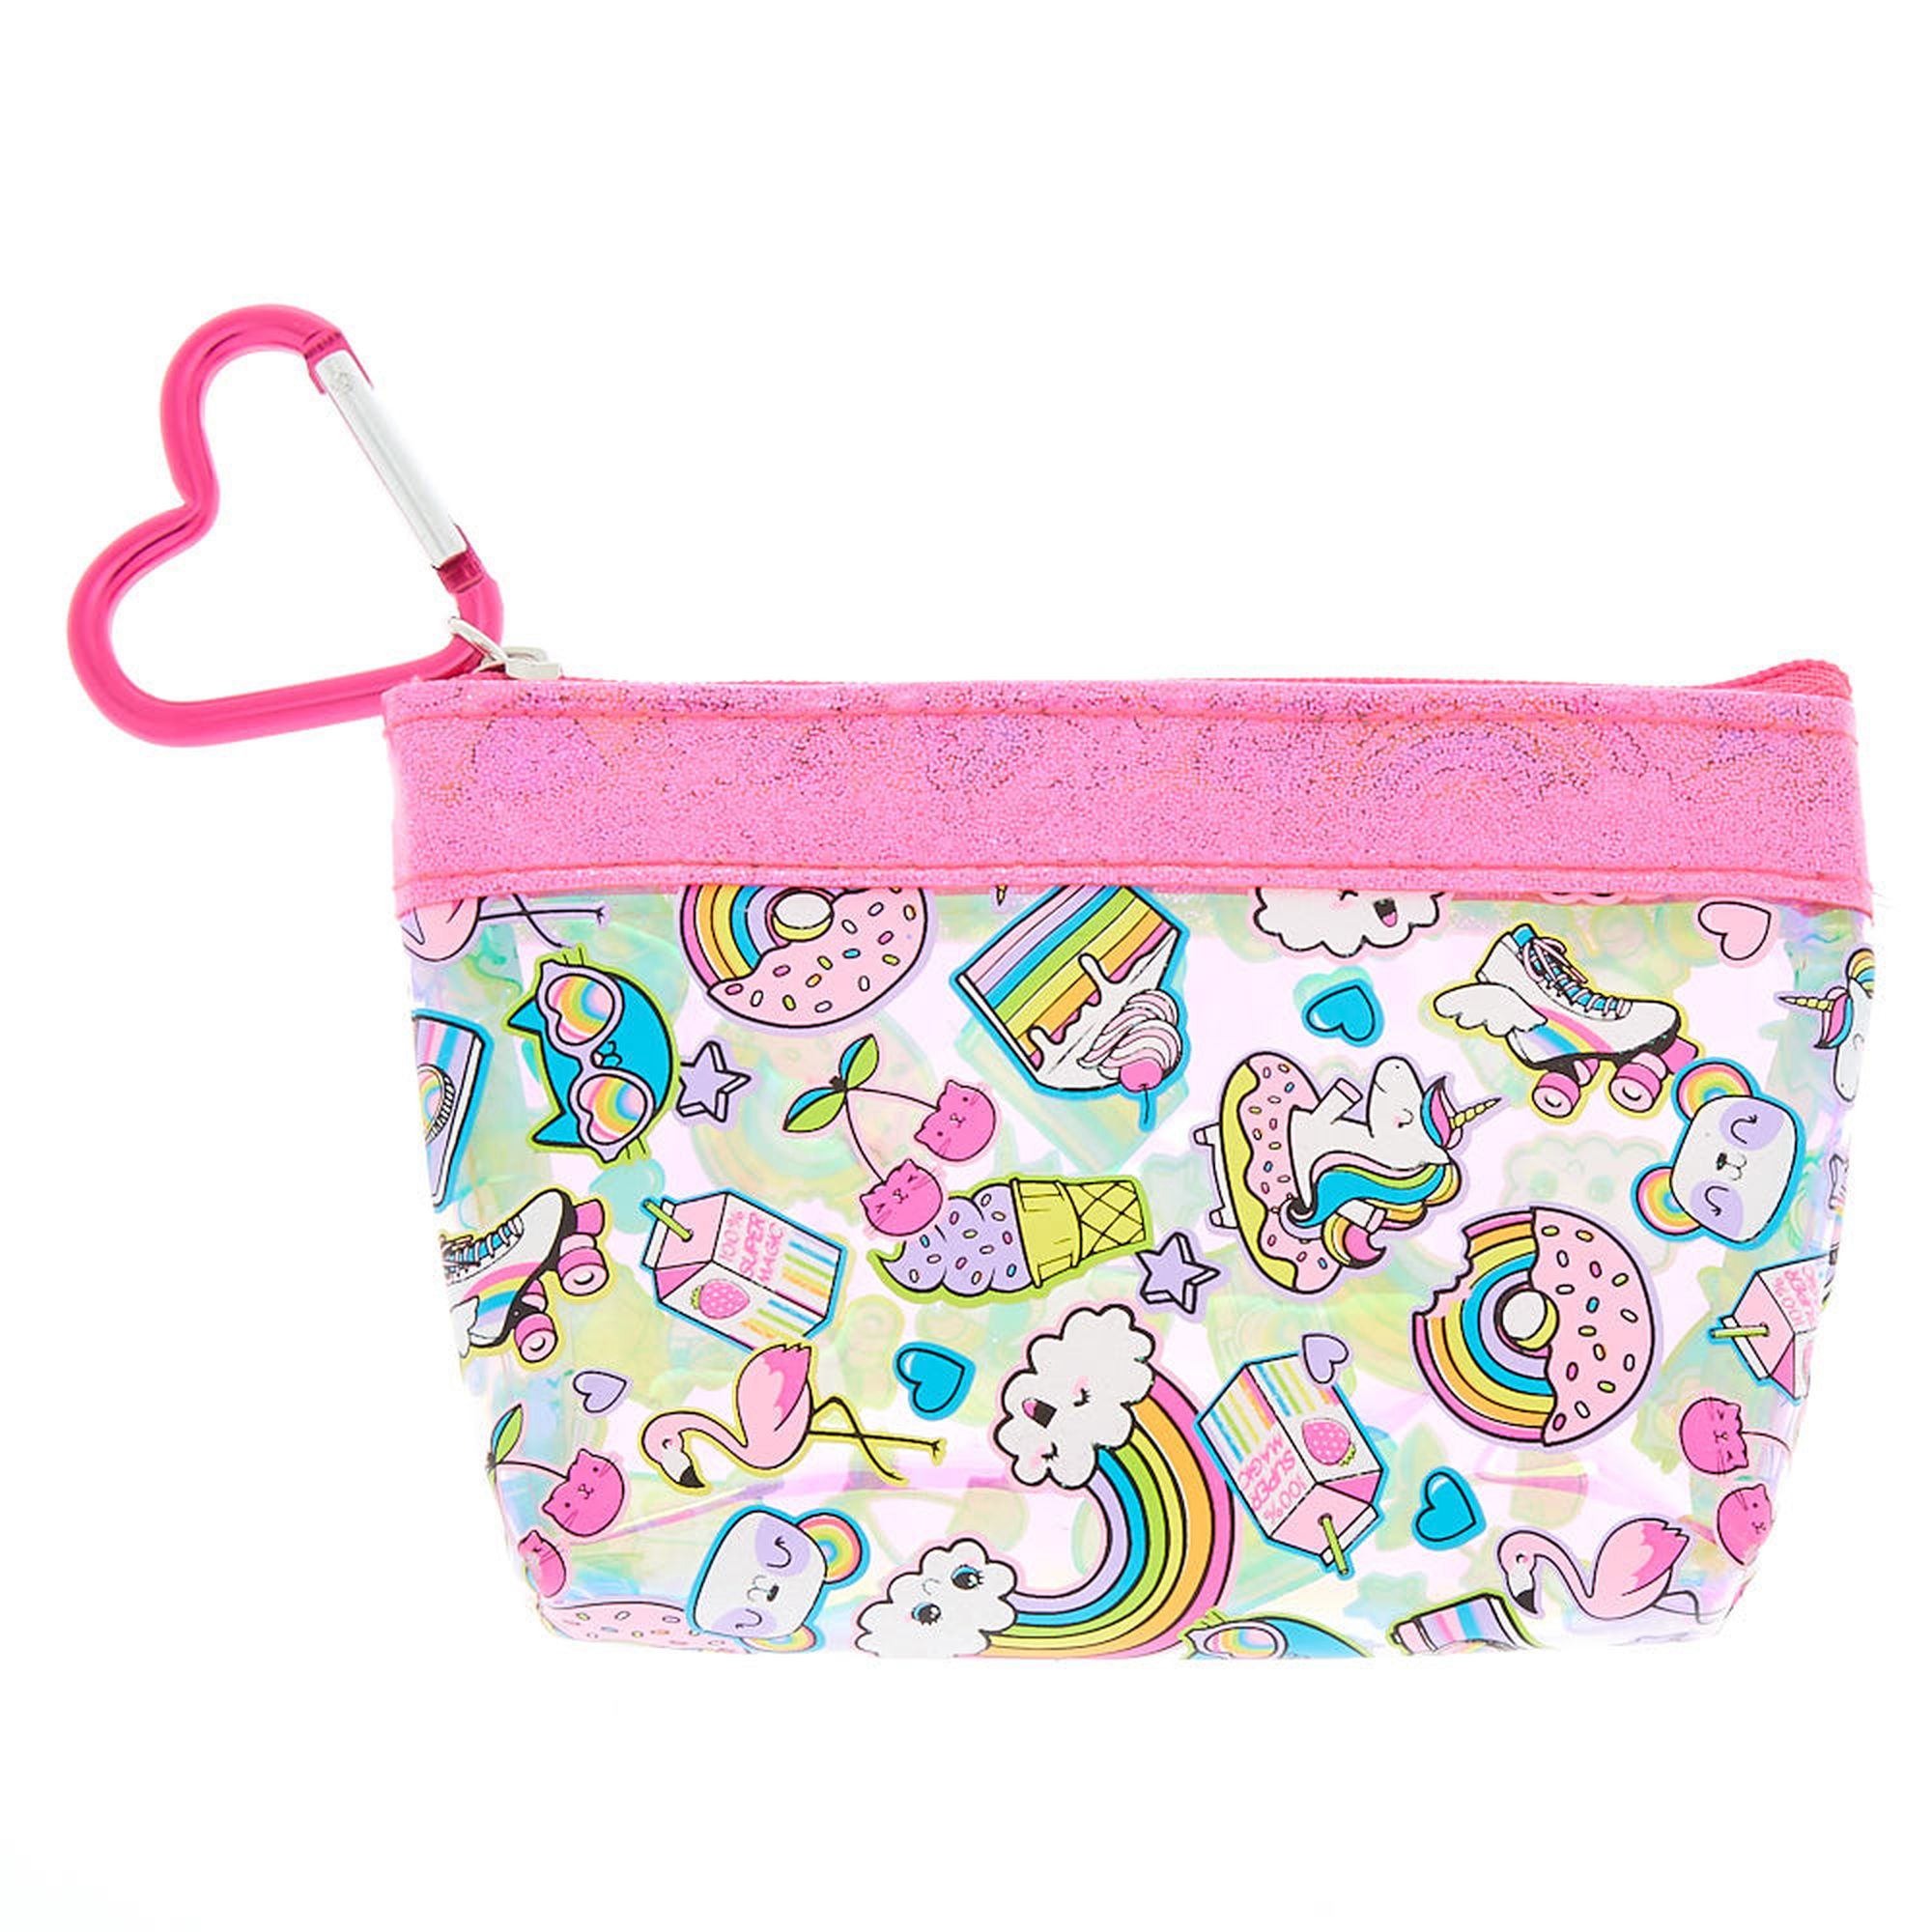 4b9f362878975 Girls Bags, Purses & Bag Charms | Claire's